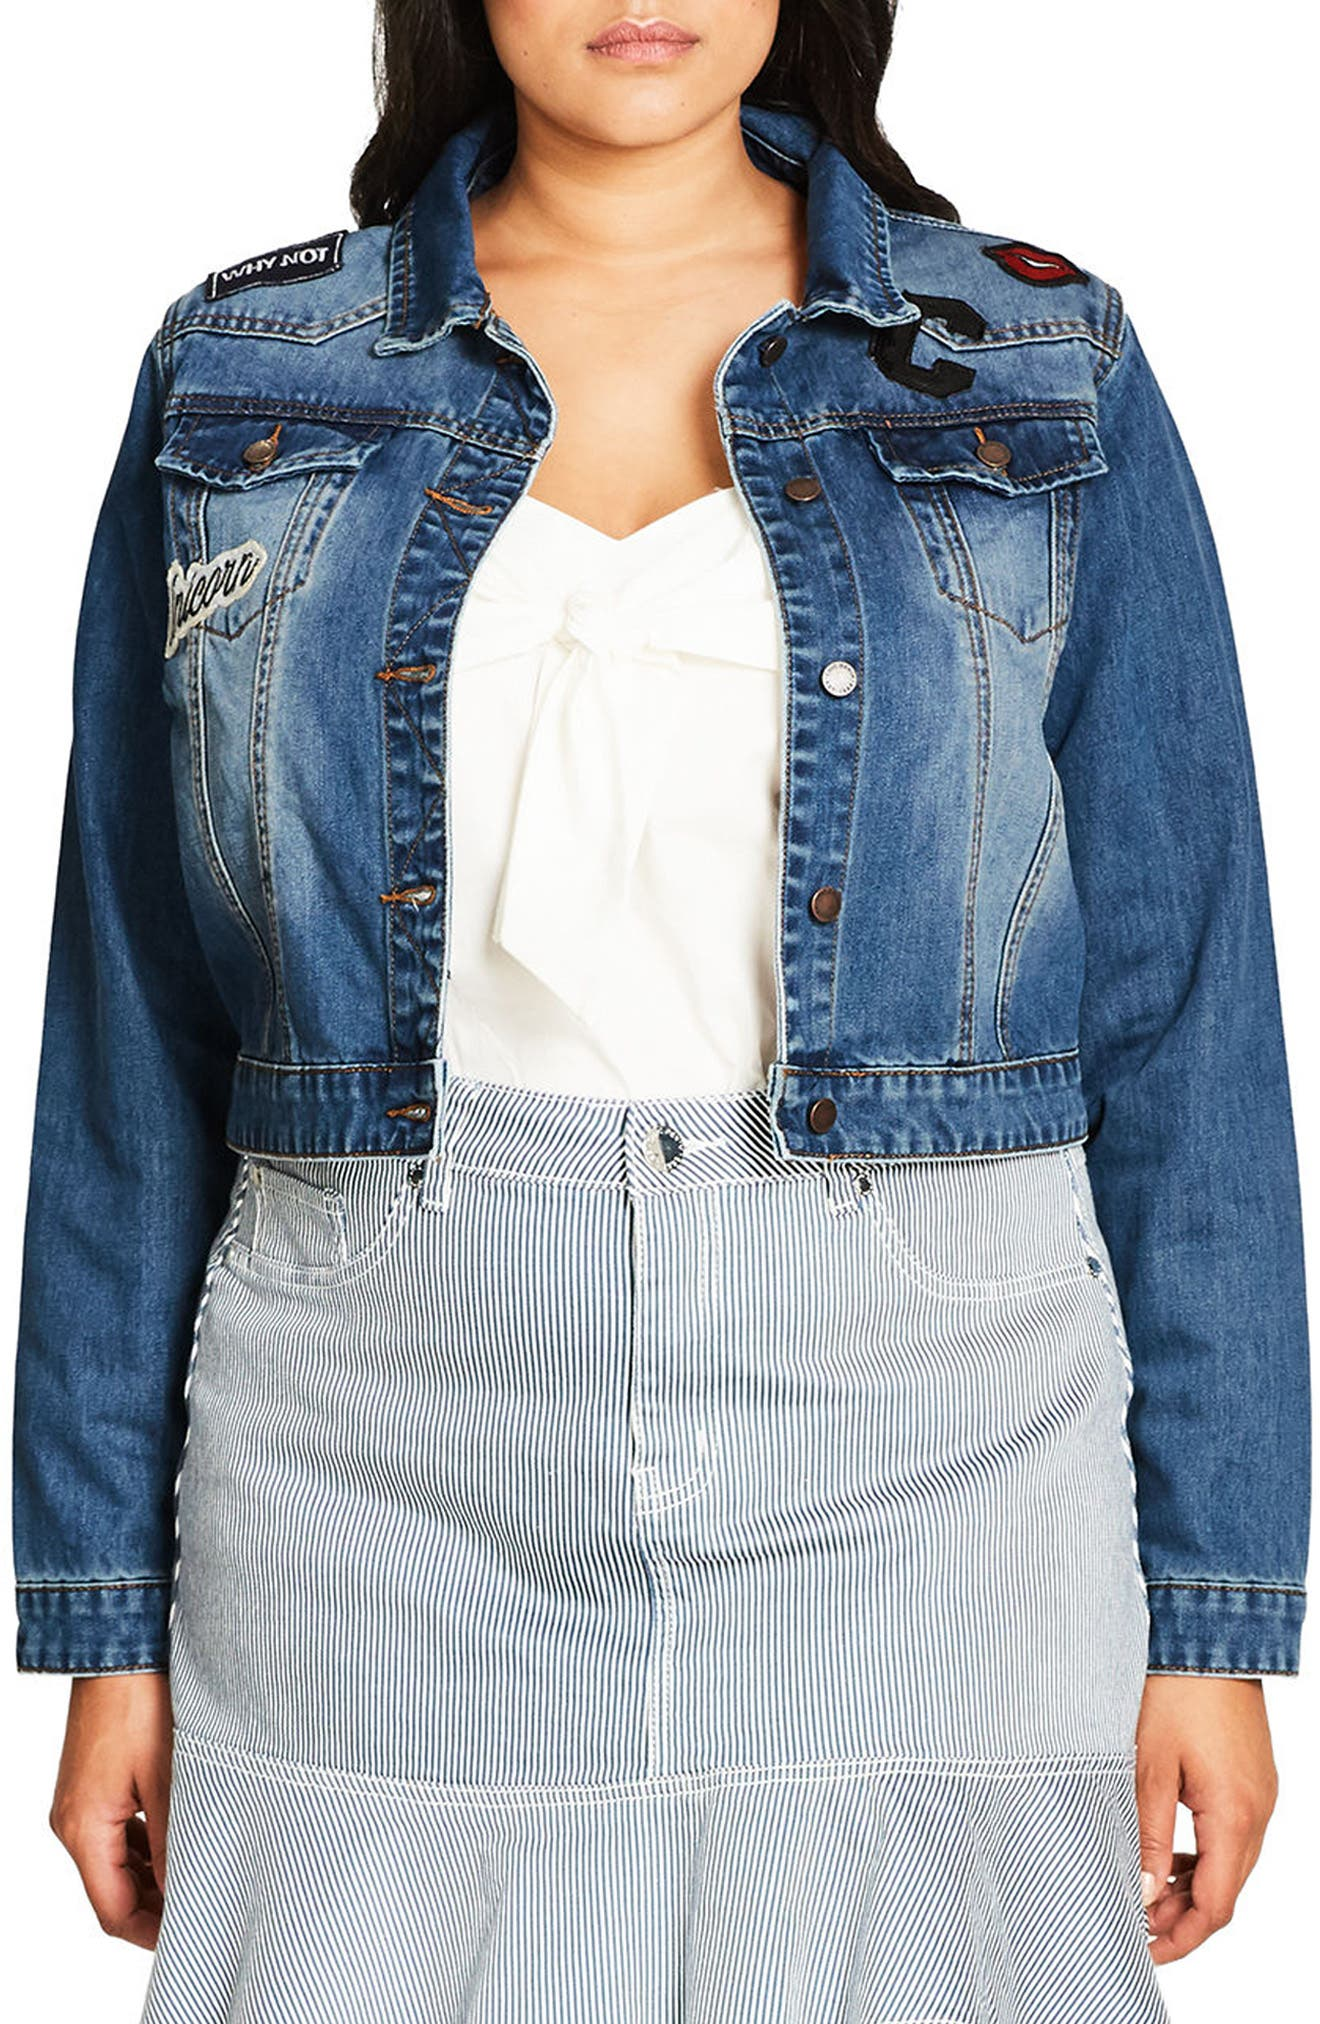 Main Image - City Chic '80s Patch Denim Jacket (Plus Size)